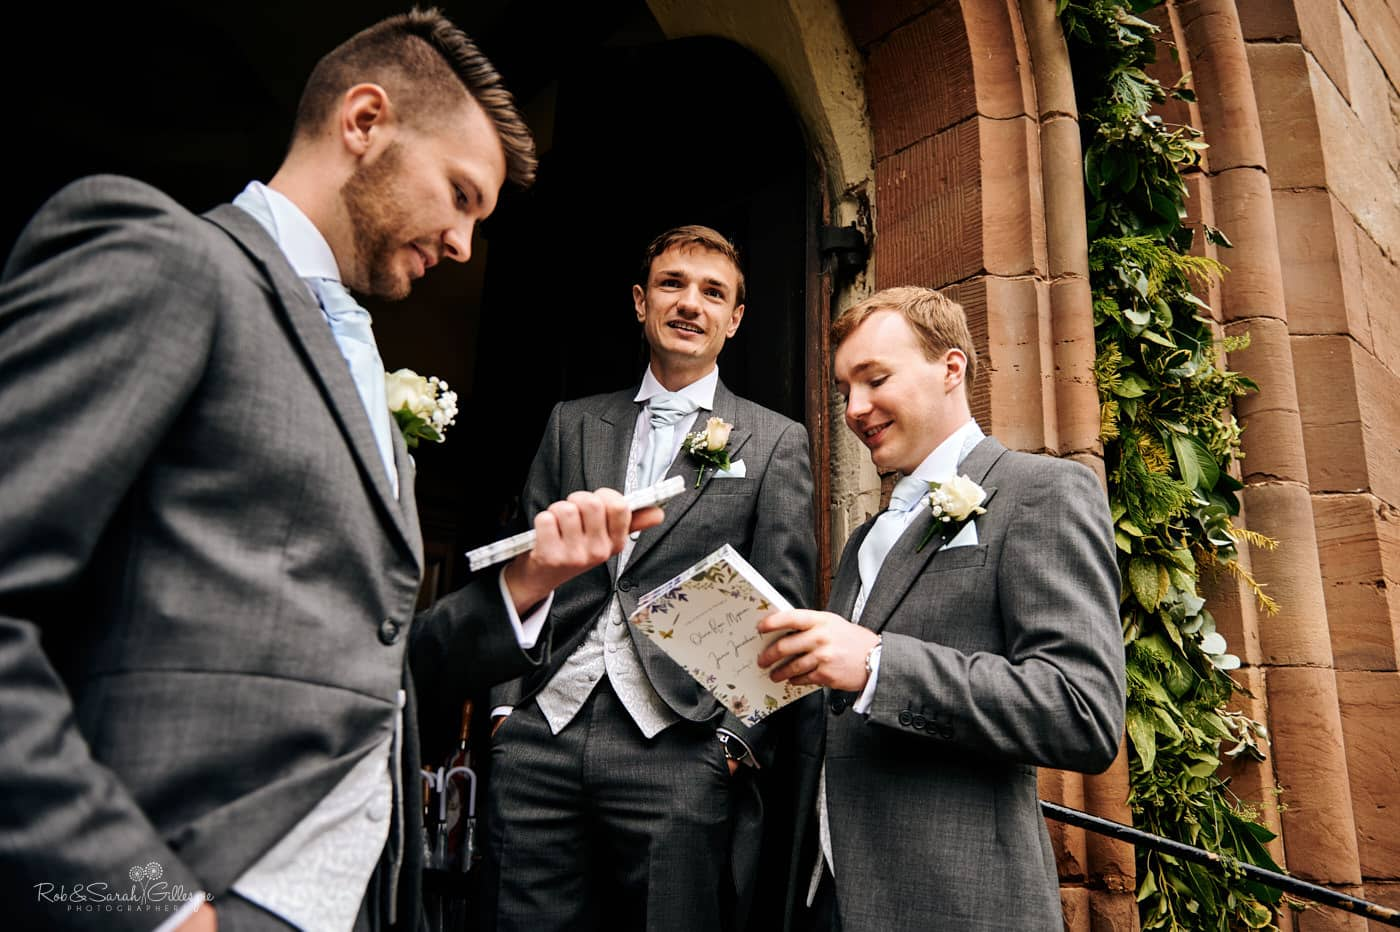 Groom and groomsmen wait for wedding guests at Hanbury Church